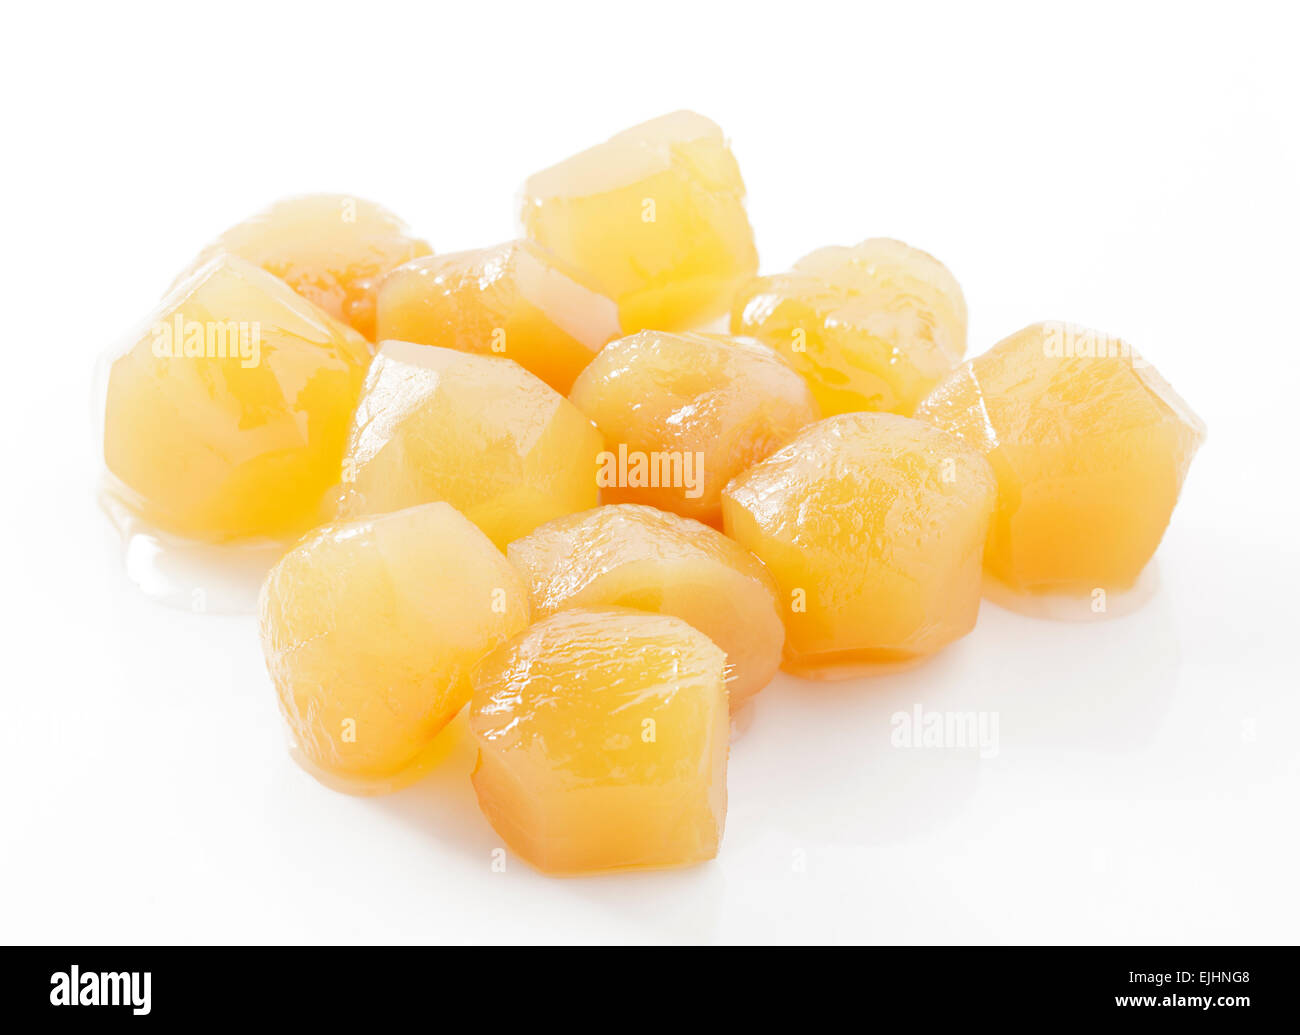 Stem ginger in syrup - Stock Image